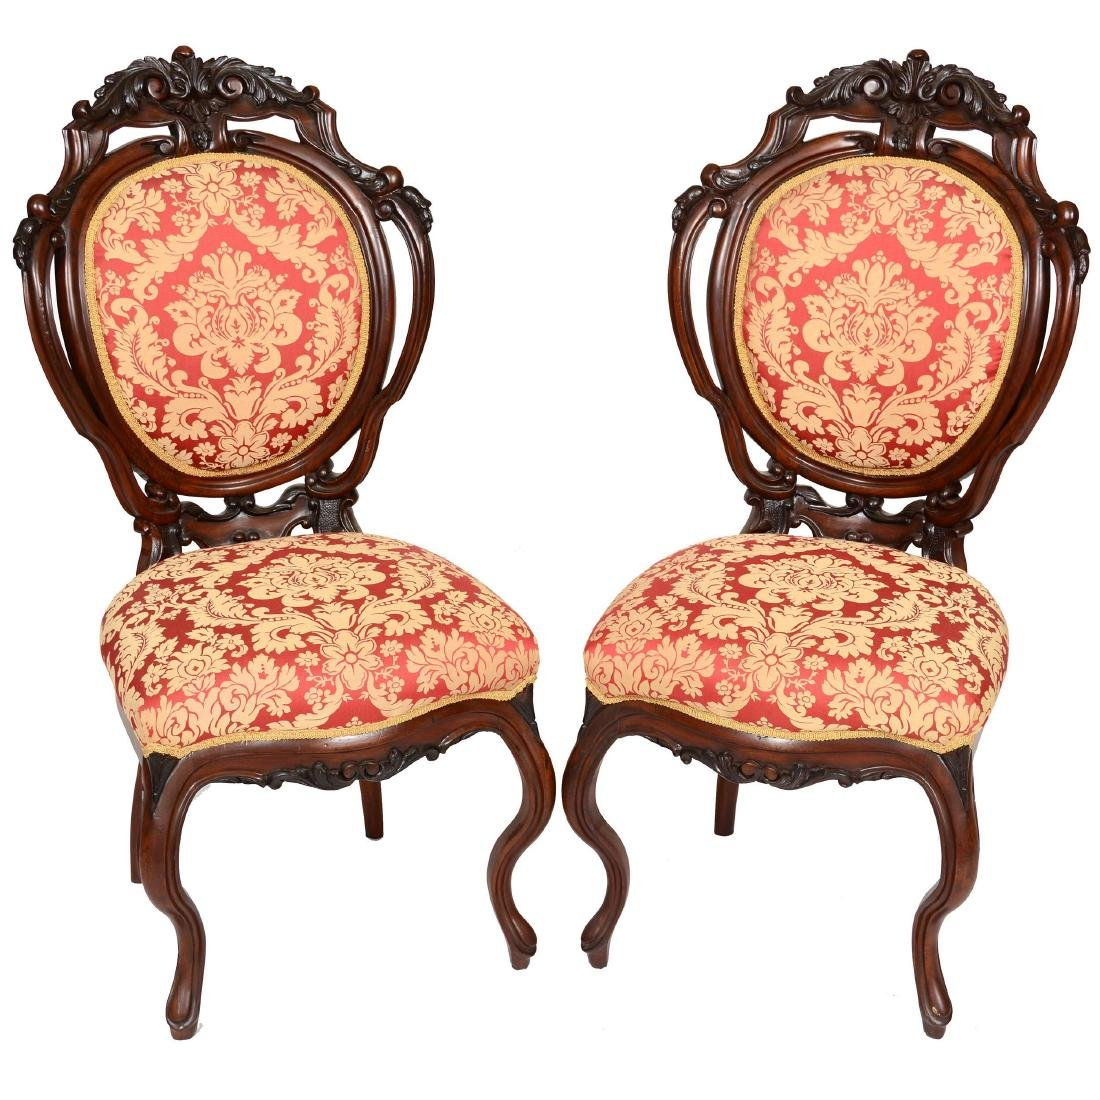 (2) Victorian Parlor Chairs